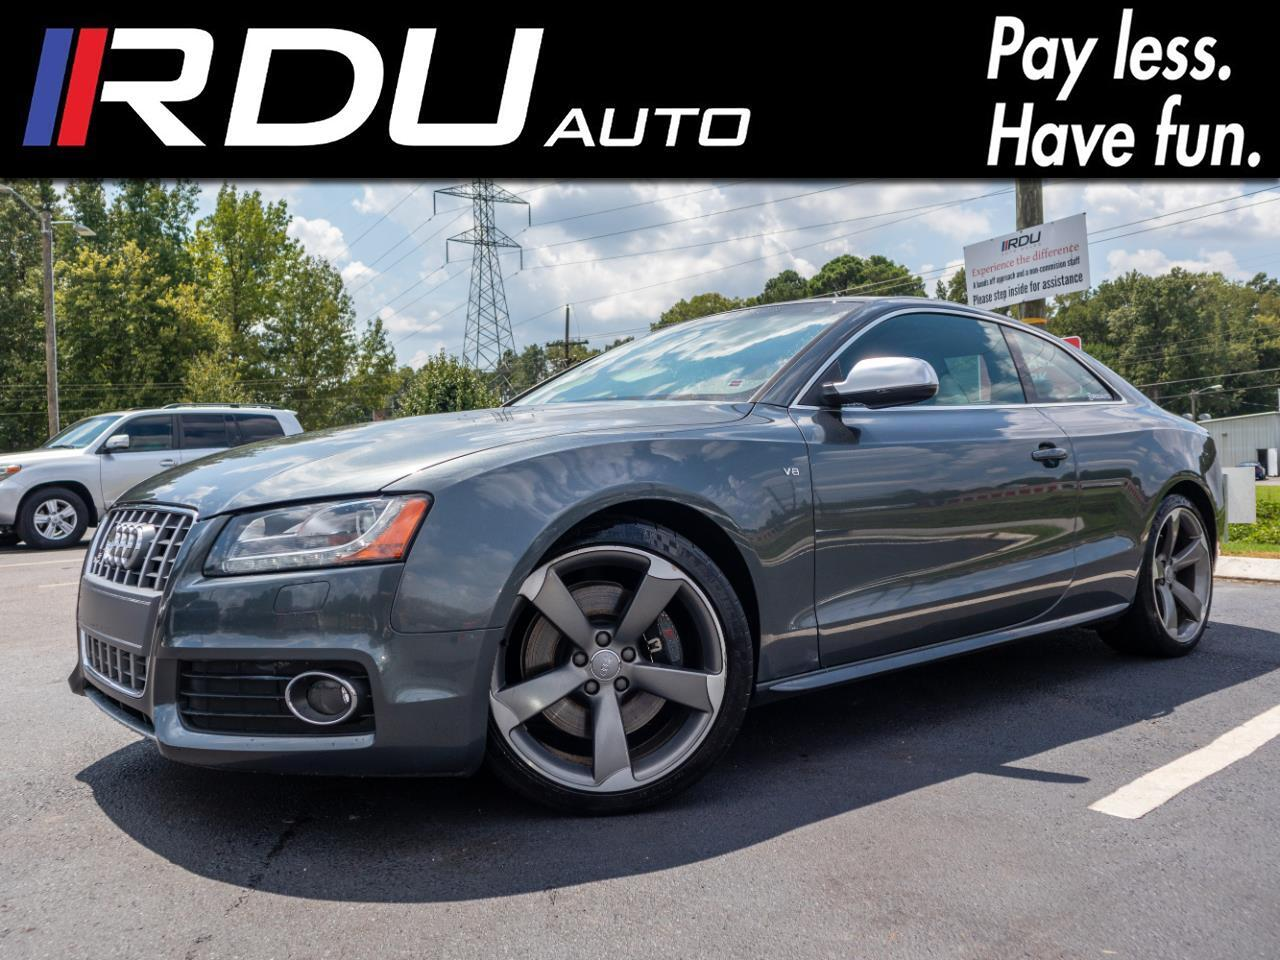 2012 Audi S5 4.2 Special Edition